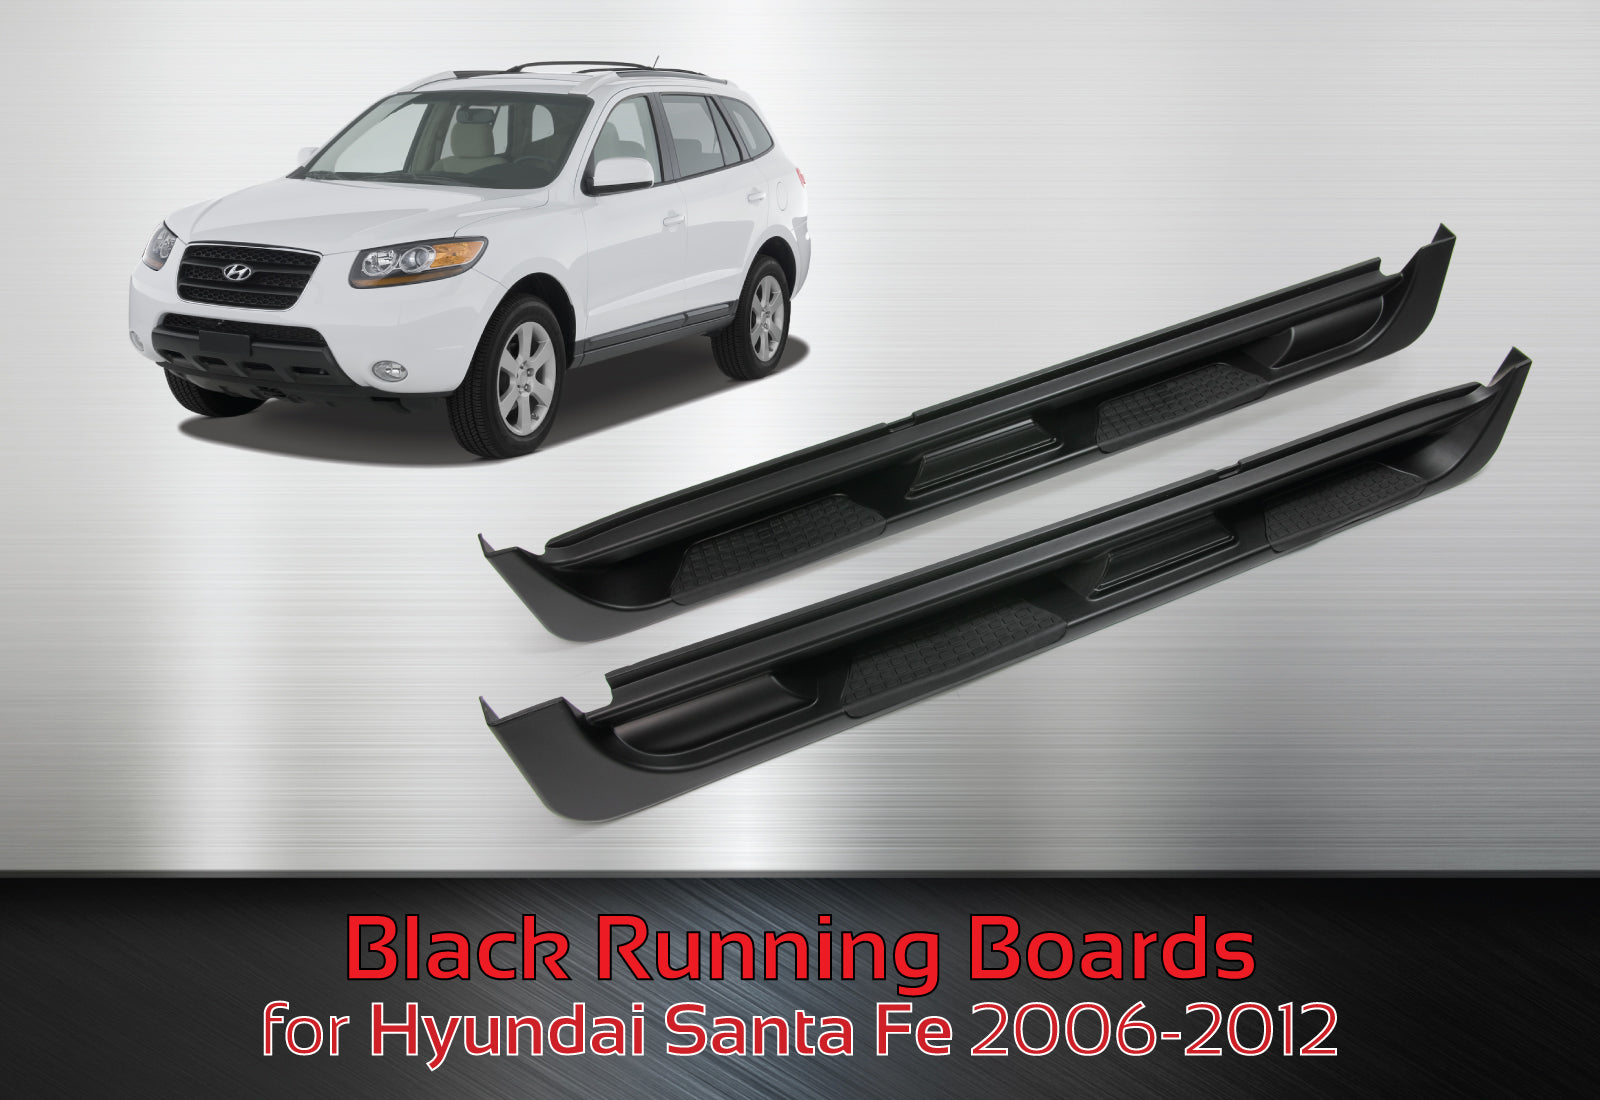 santa-fe-black-running-boards-side-steps-style-b-2006-2012--t_RVG1EHUZFGND.jpg